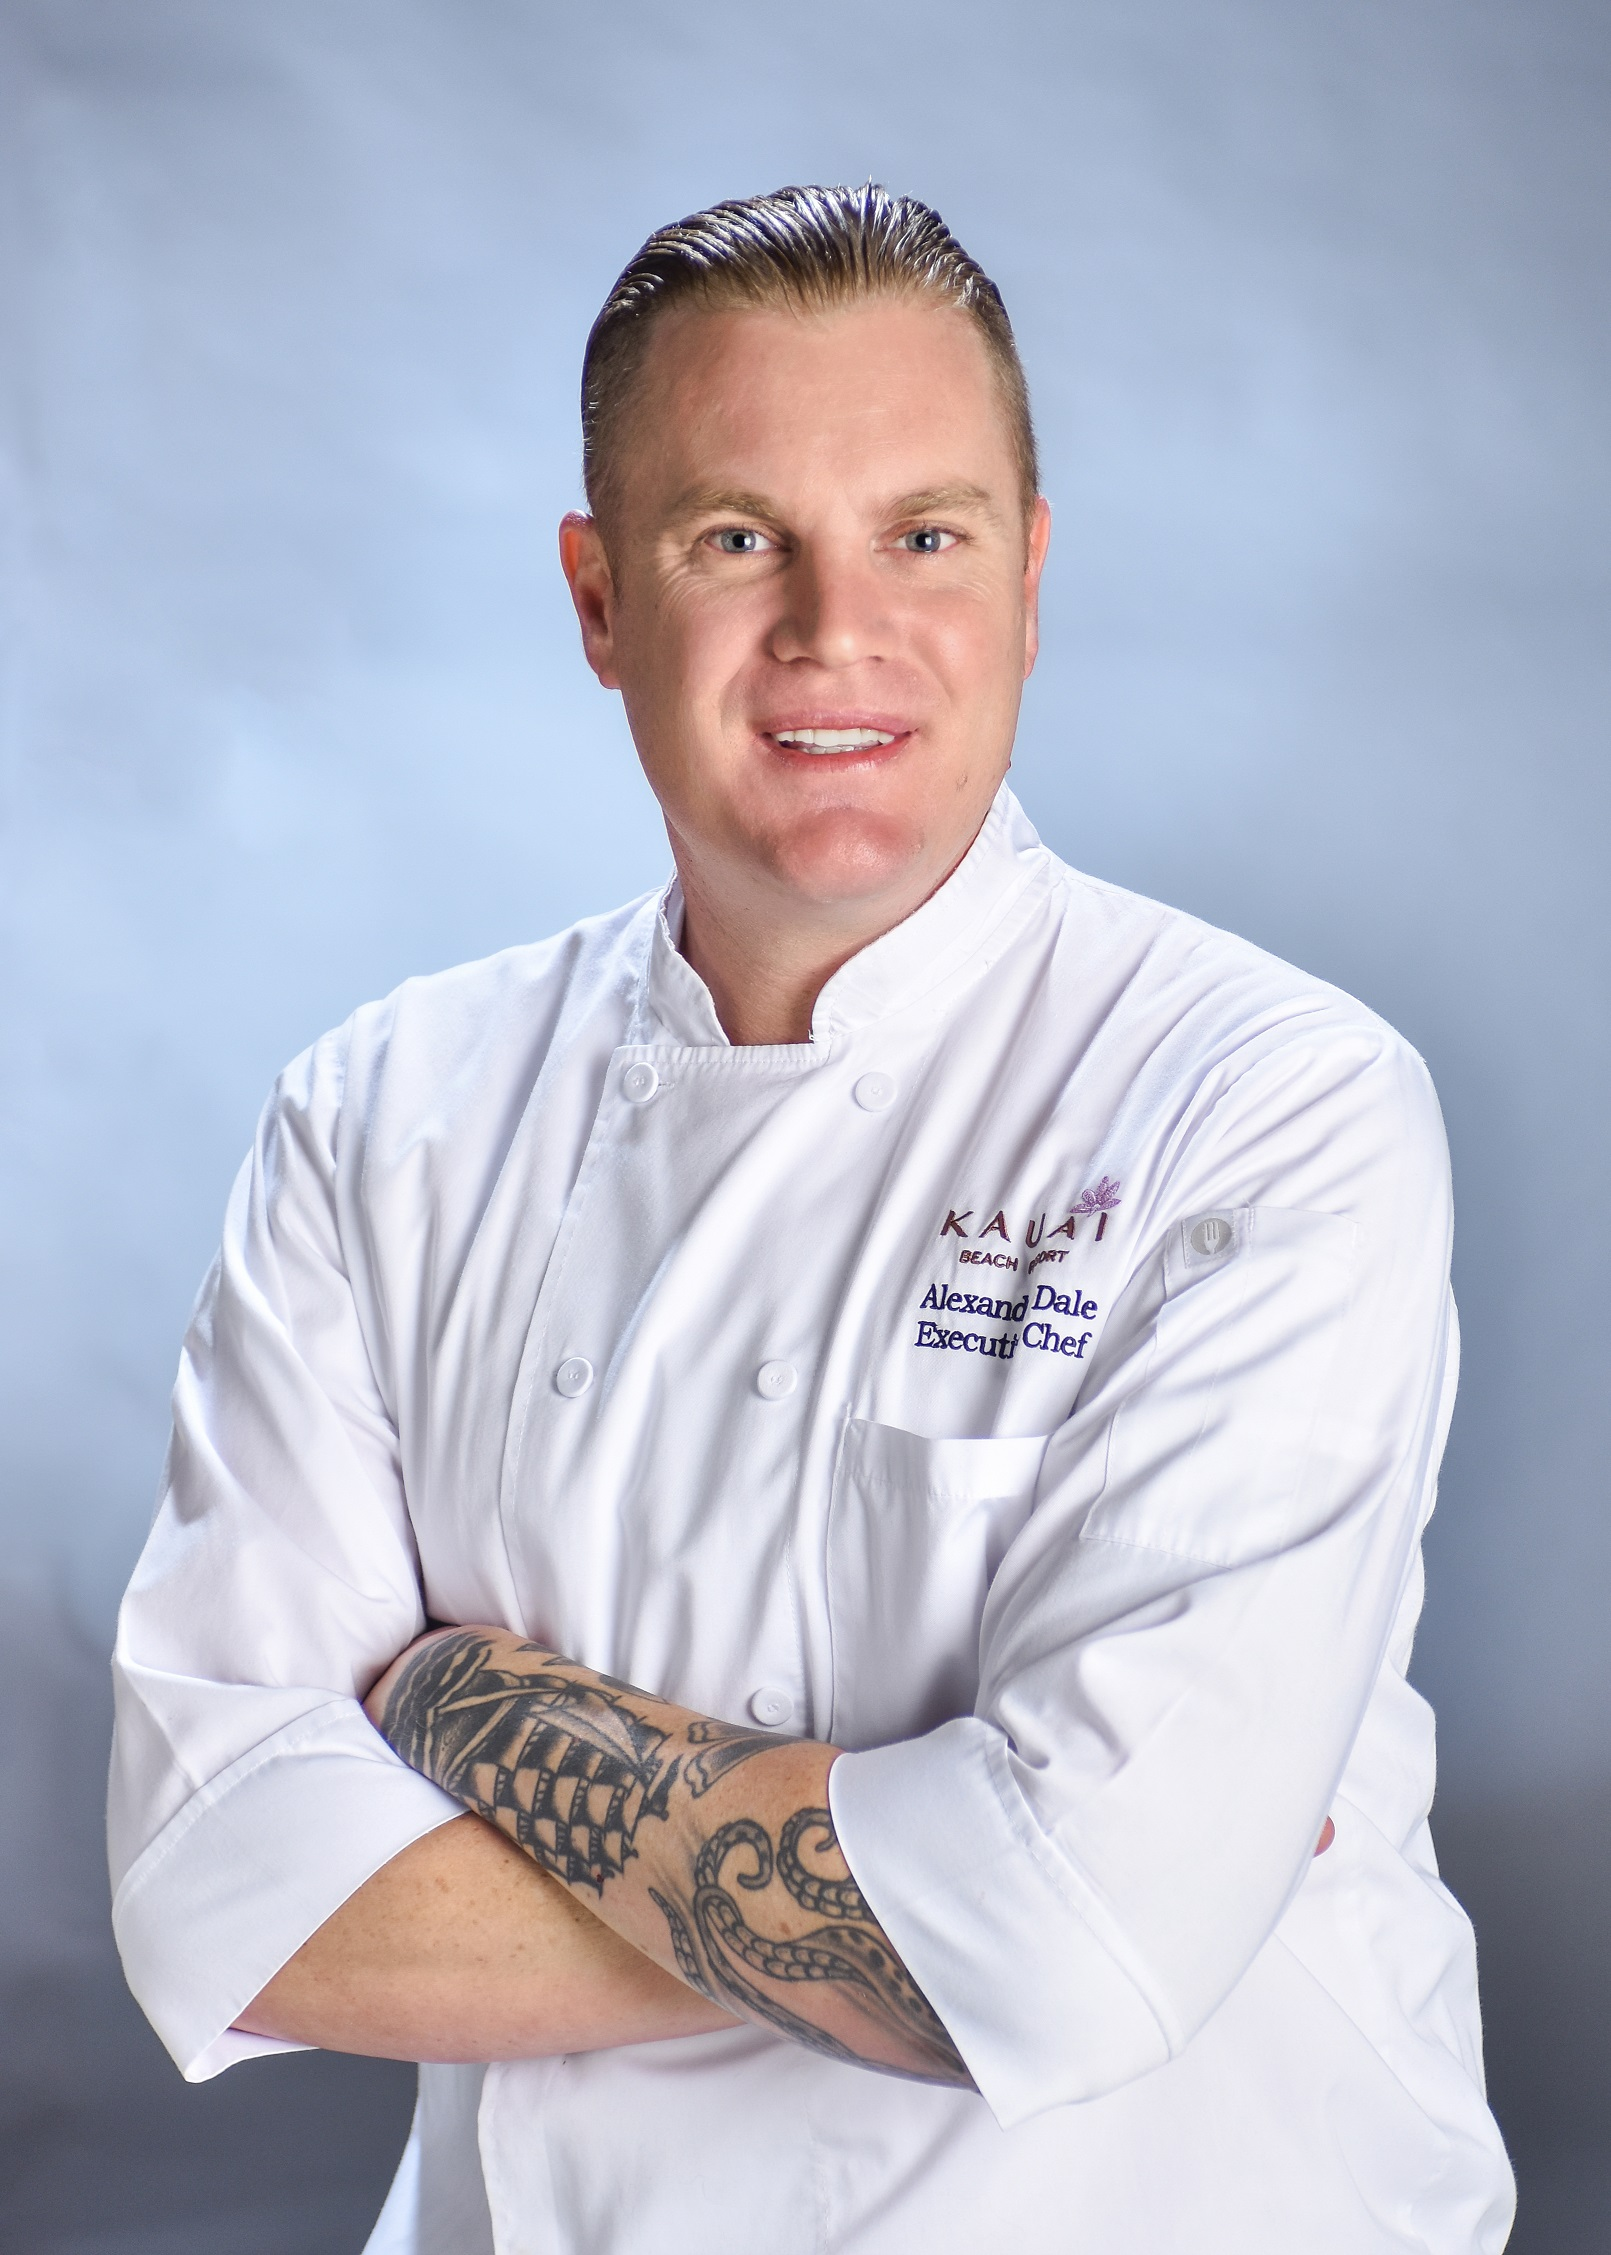 Chef-Alexander-Dale-Aqua-Kauai-Beach-Resort.jpg